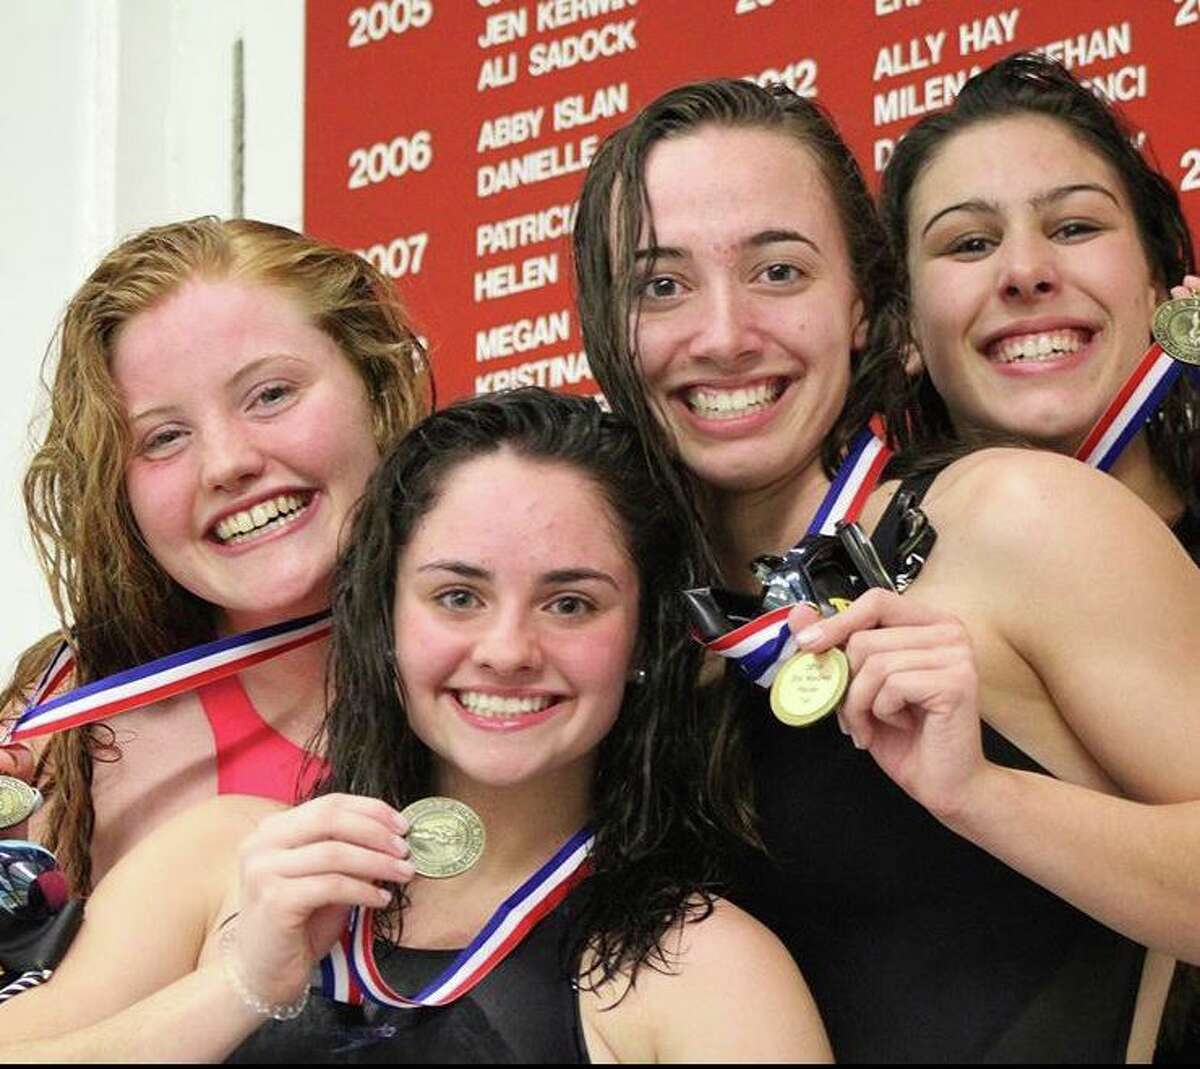 Trumbull's foursome of senior Mia Zajac, sophomore Lauren Walsh, senior Ashleigh Piro and senior Julia Nevins combined for a winning time of 1:46.86 in the 200-yard medley relay at the FCIAC Championships. Walsh was the Most Outstanding Swimmer.